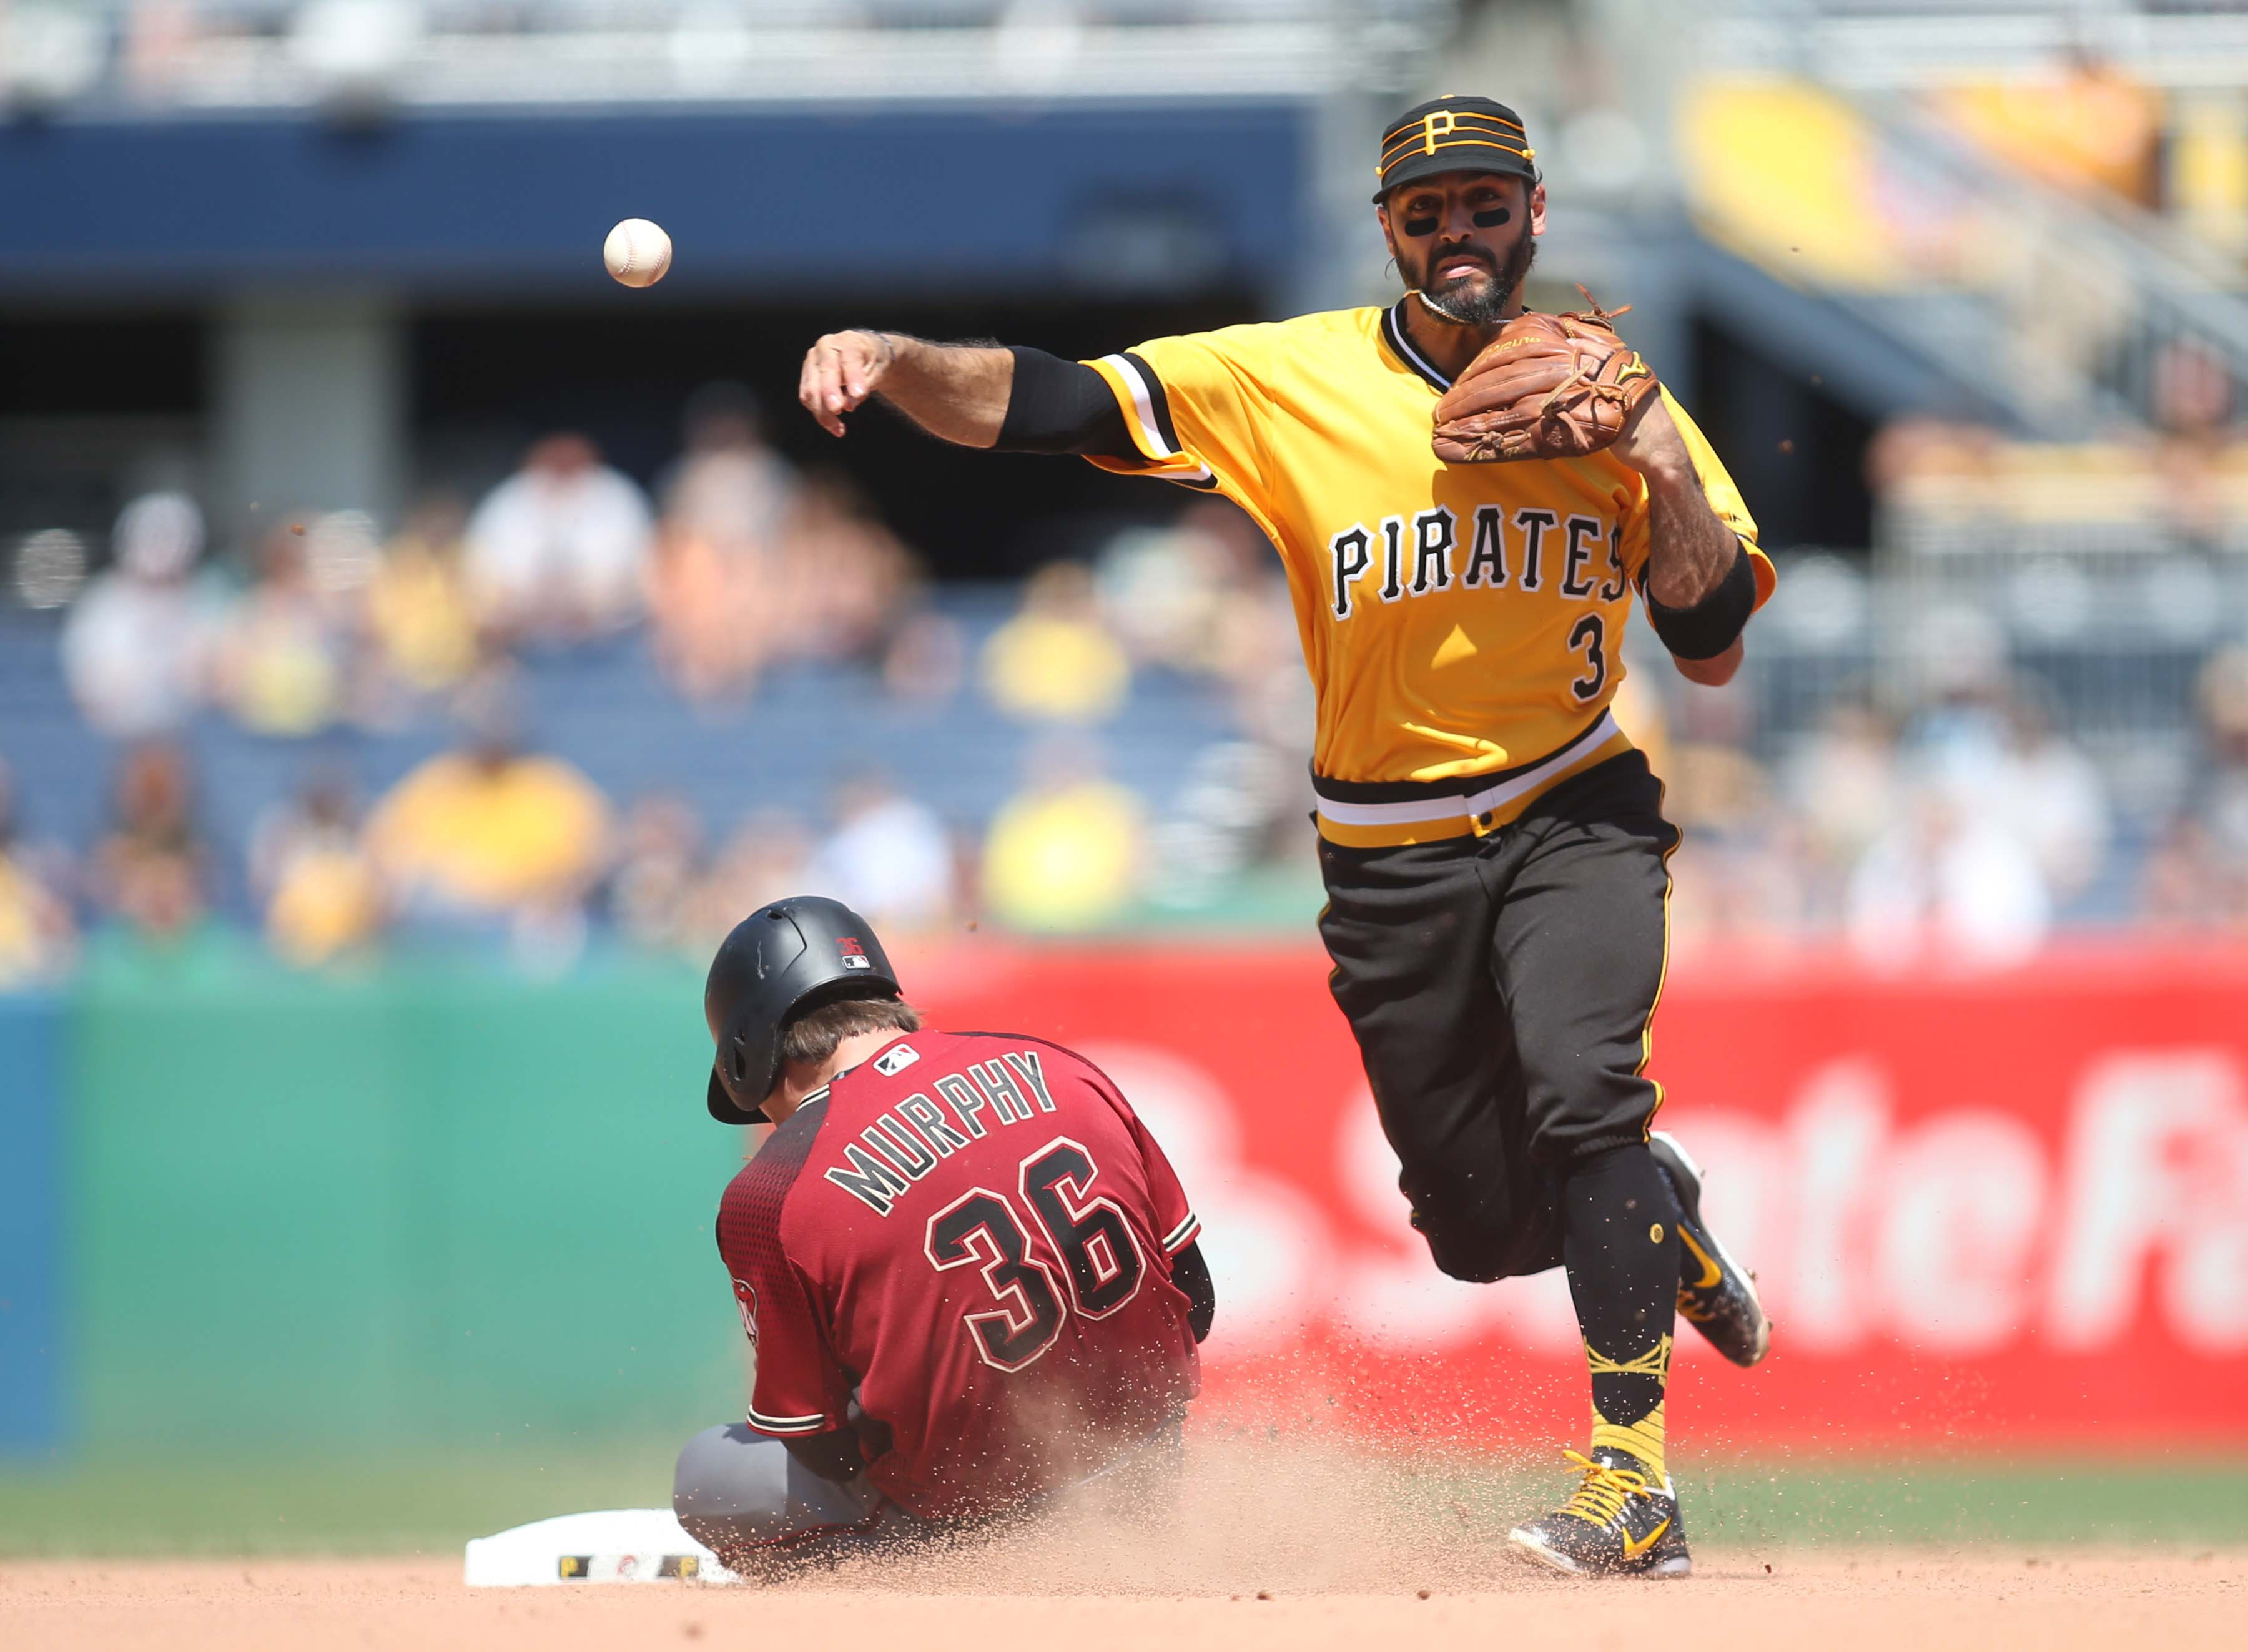 Sean Rodriguez Bobblehead Day: A New Low Point for Pirates